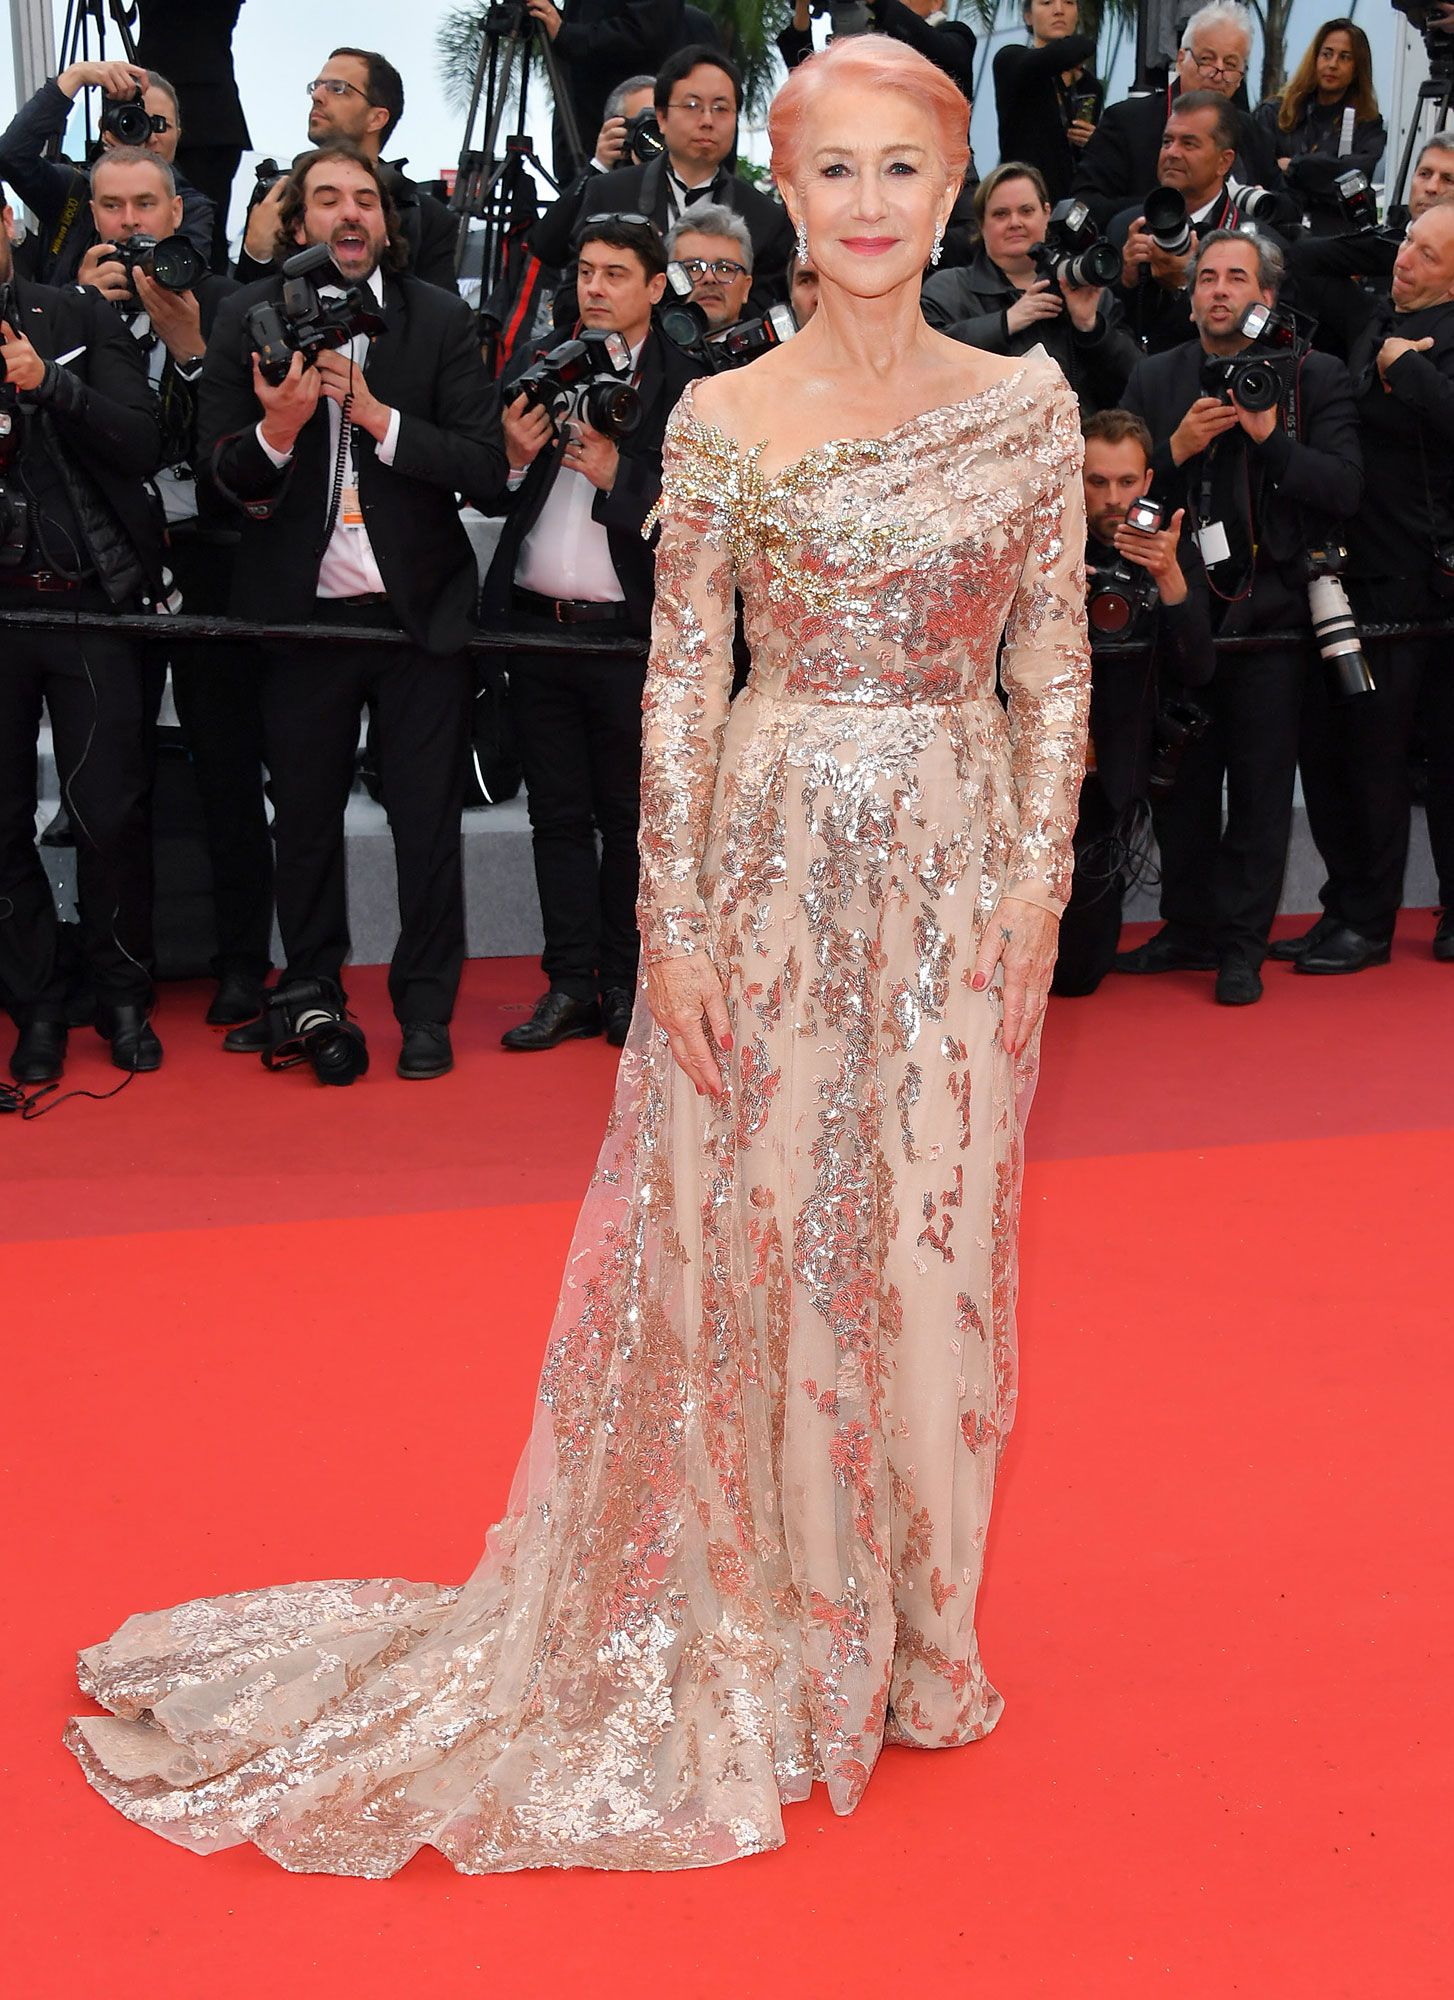 Dame Helen Mirren Stepping Out in Style at Cannes Film Festival - Sure, the Oscar winner's shimmering Elie Saab gown and Chopard jewels at the Les Plus Belles Annees D'Une Vie premiere on Saturday, May 18, were stunning. But we couldn't get enough of her pastel pink 'do.